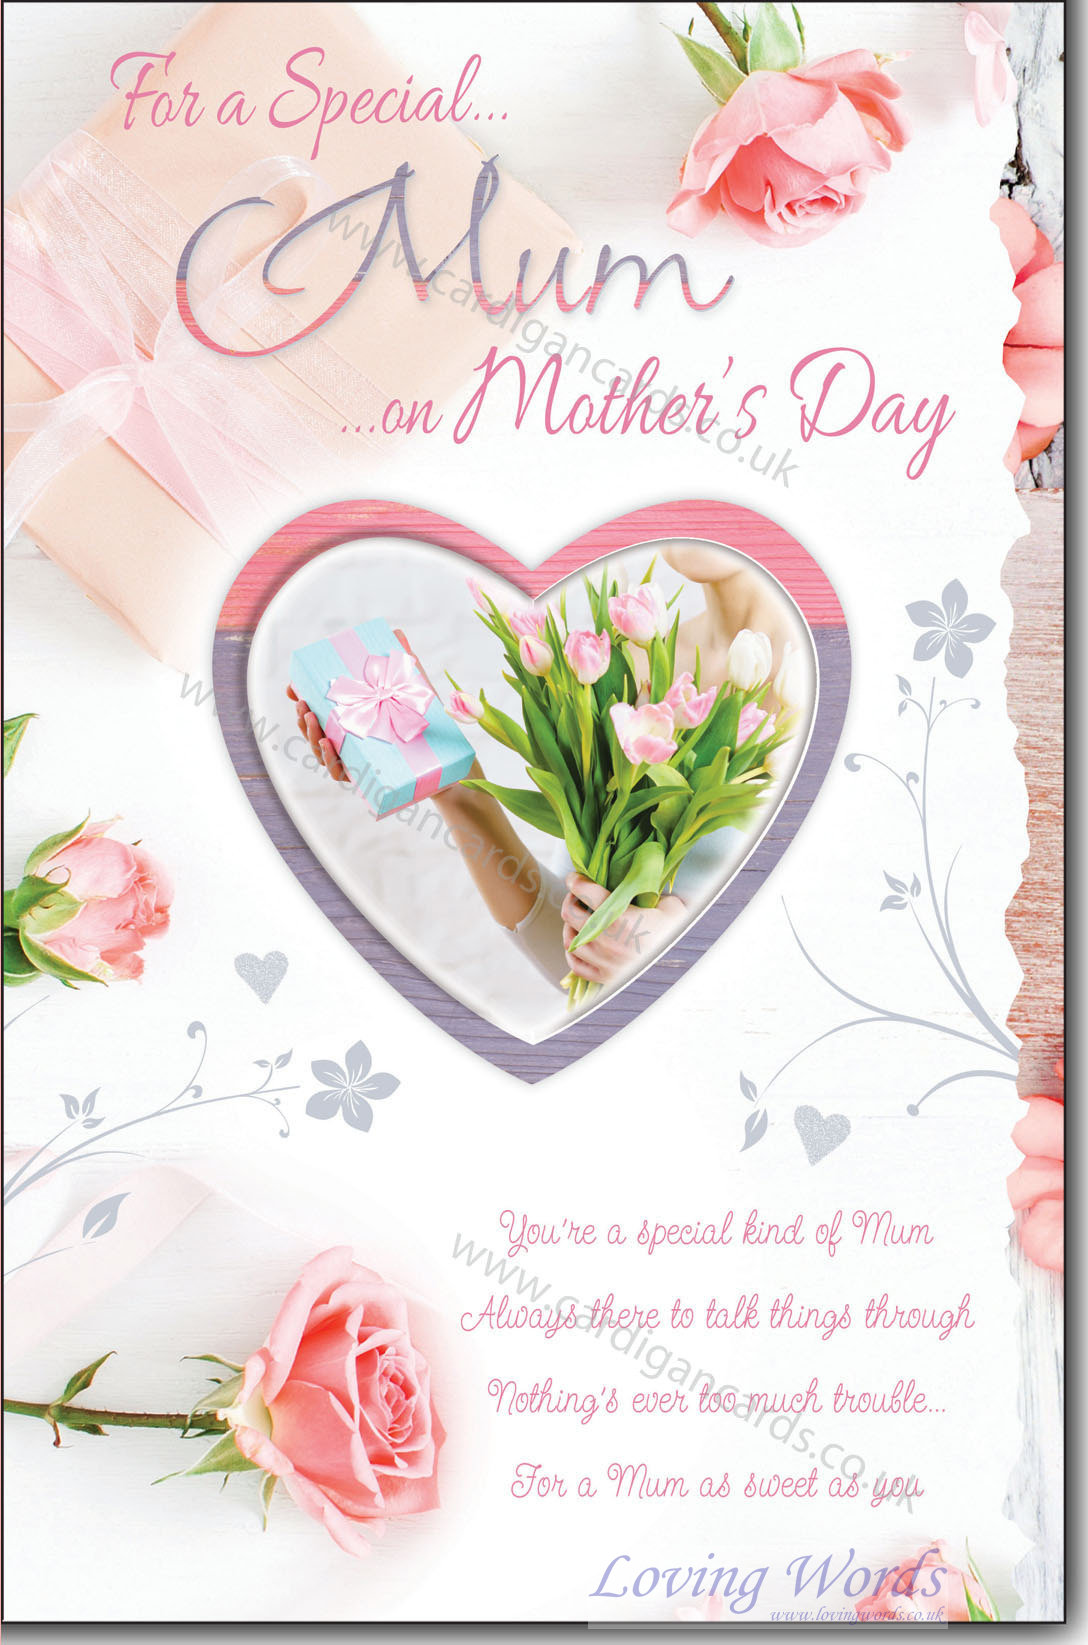 Special mum mothers day greeting cards by loving words personalised greeting cards m4hsunfo